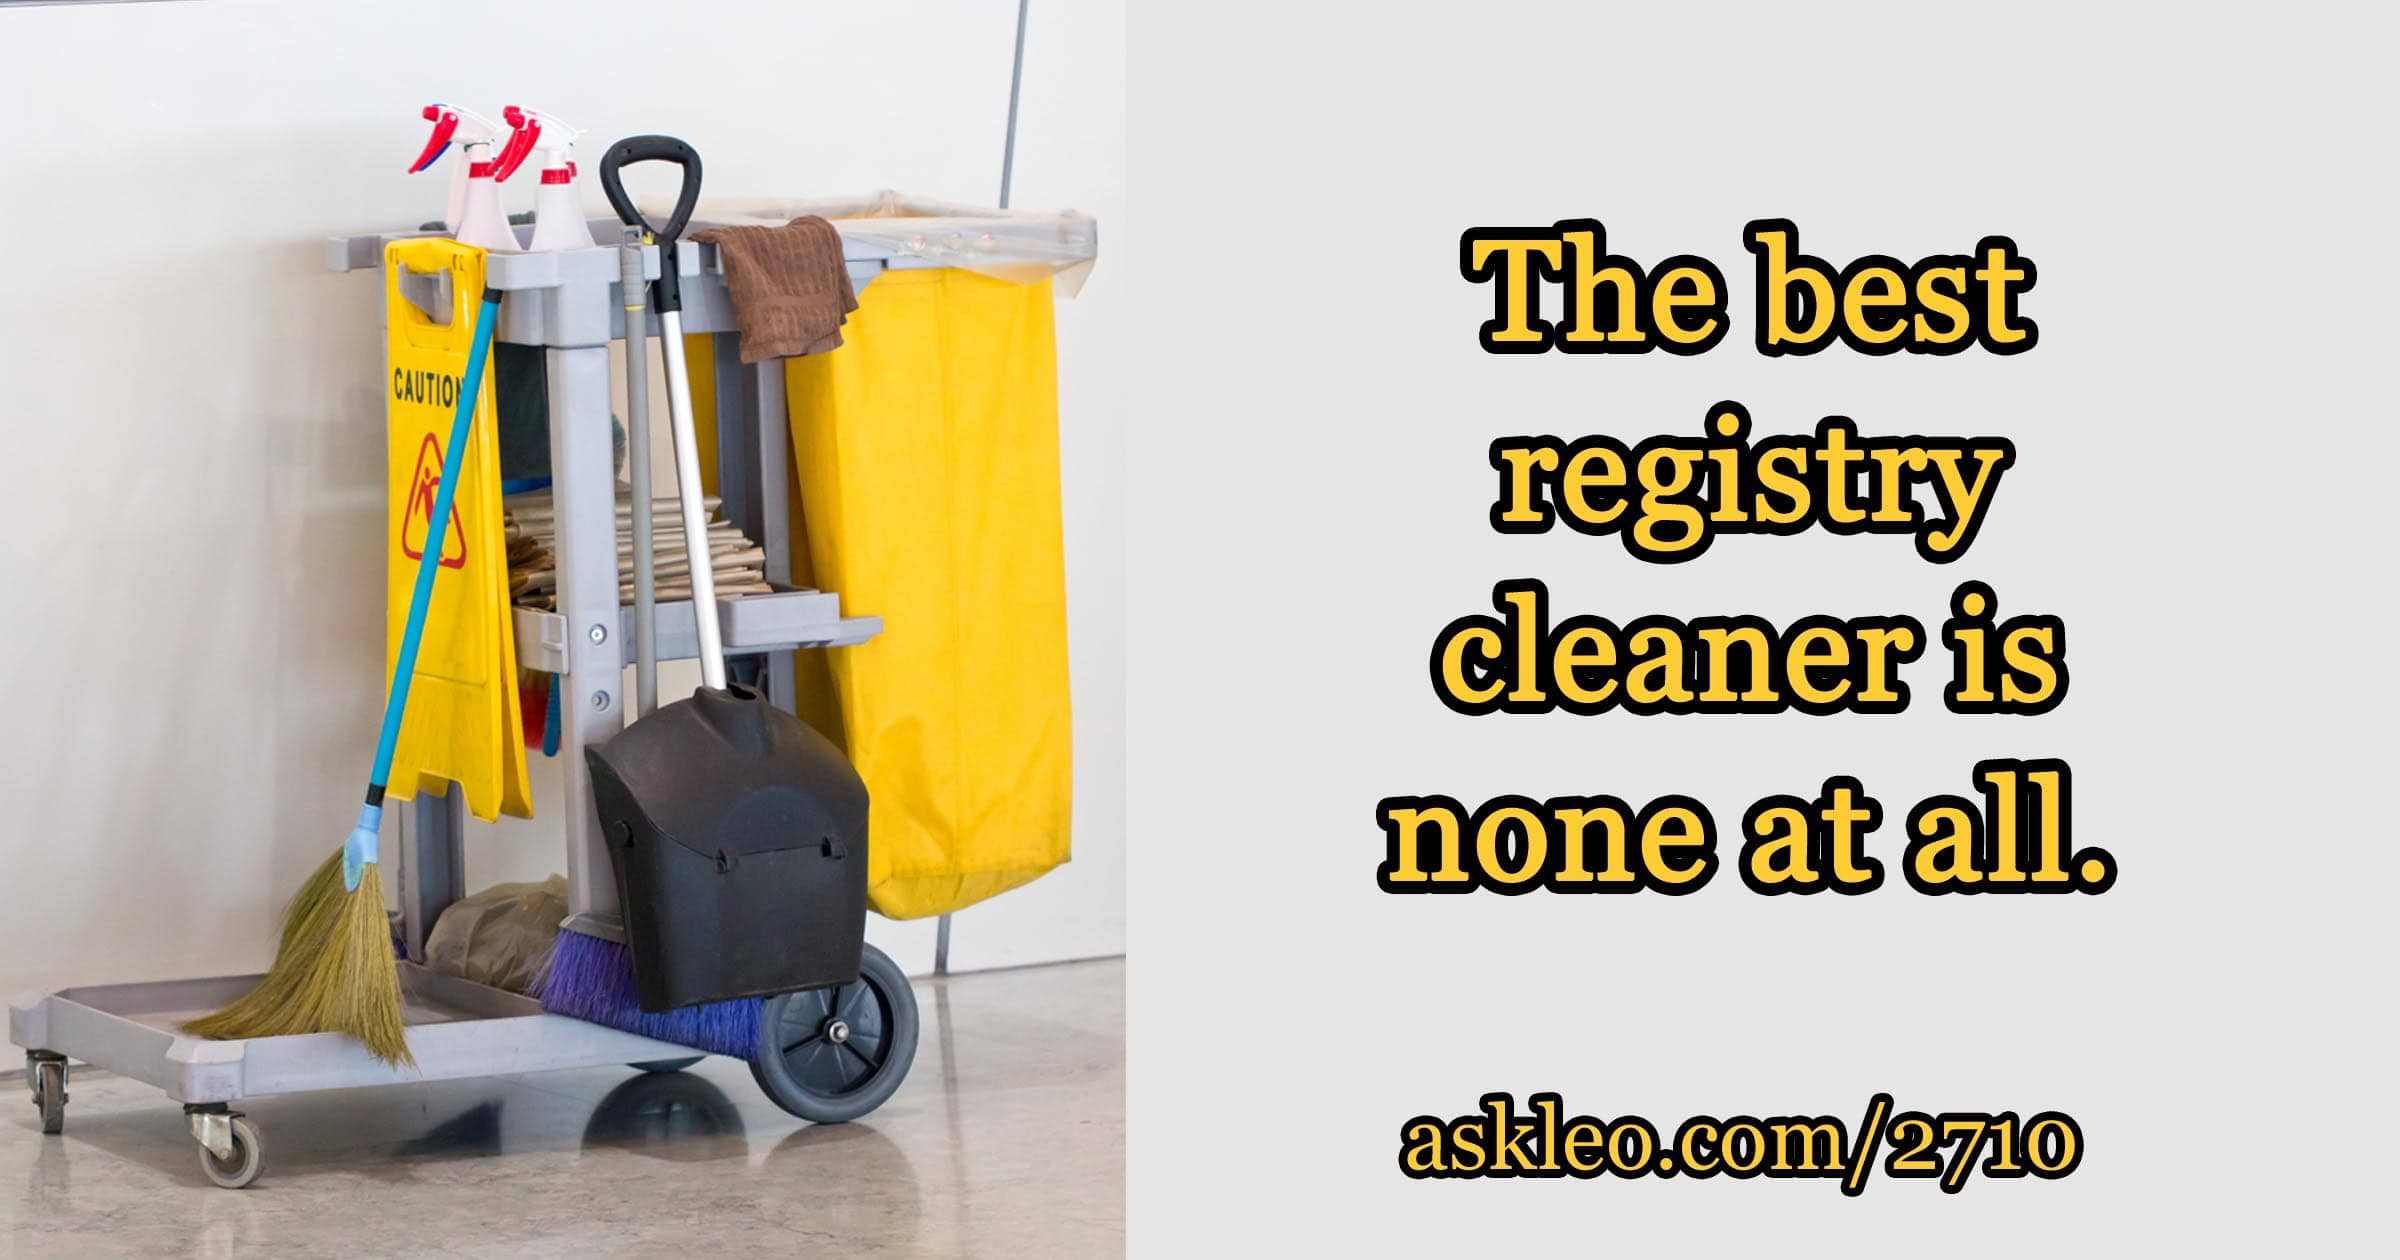 What's the best registry cleaner?